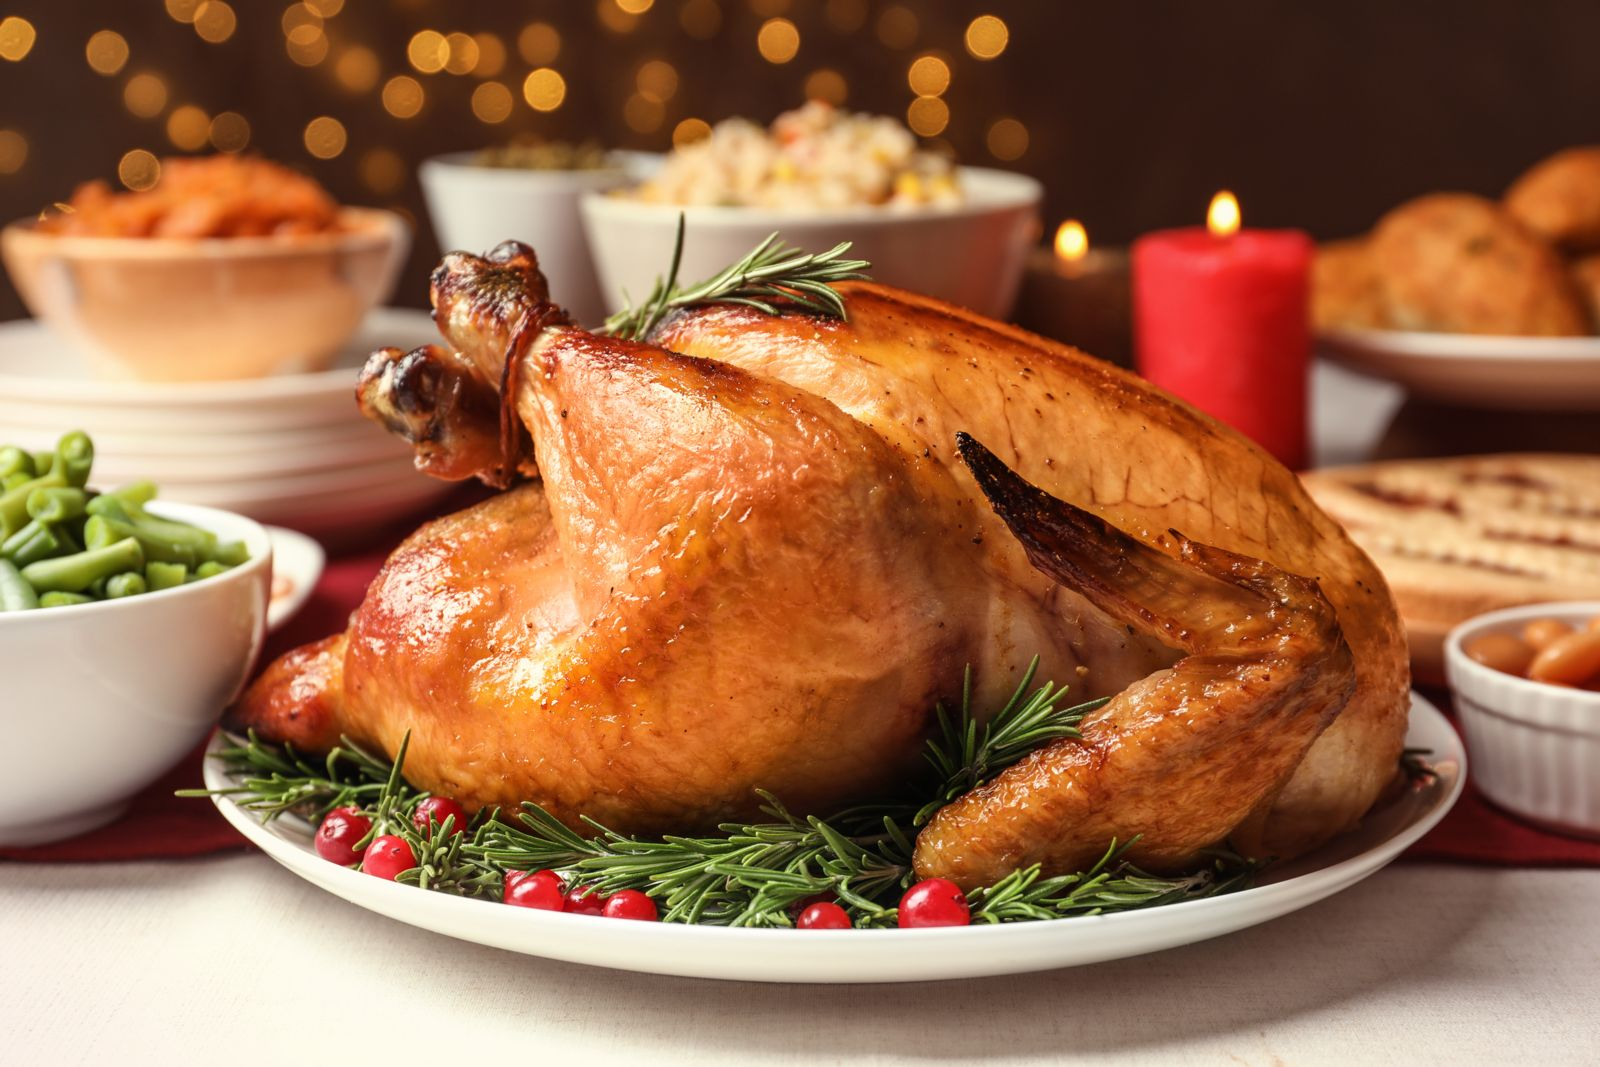 Choosing white meat over dark, and other simple swaps can keep your holiday healthier!